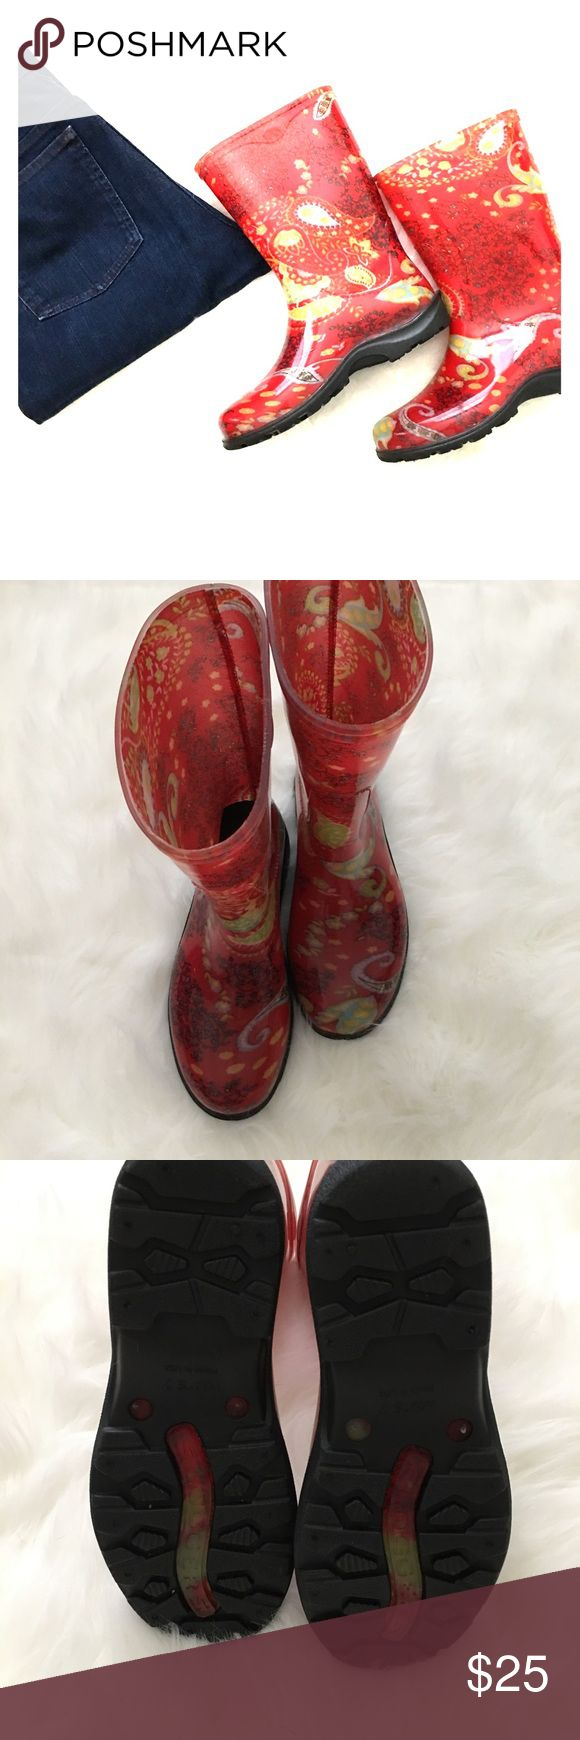 """NWT Slogger rain boots NWT size 7 Slogger rain boots. Red paisley design black rubber slip resistant sole. 10"""" high 7"""" opening. Shoes"""